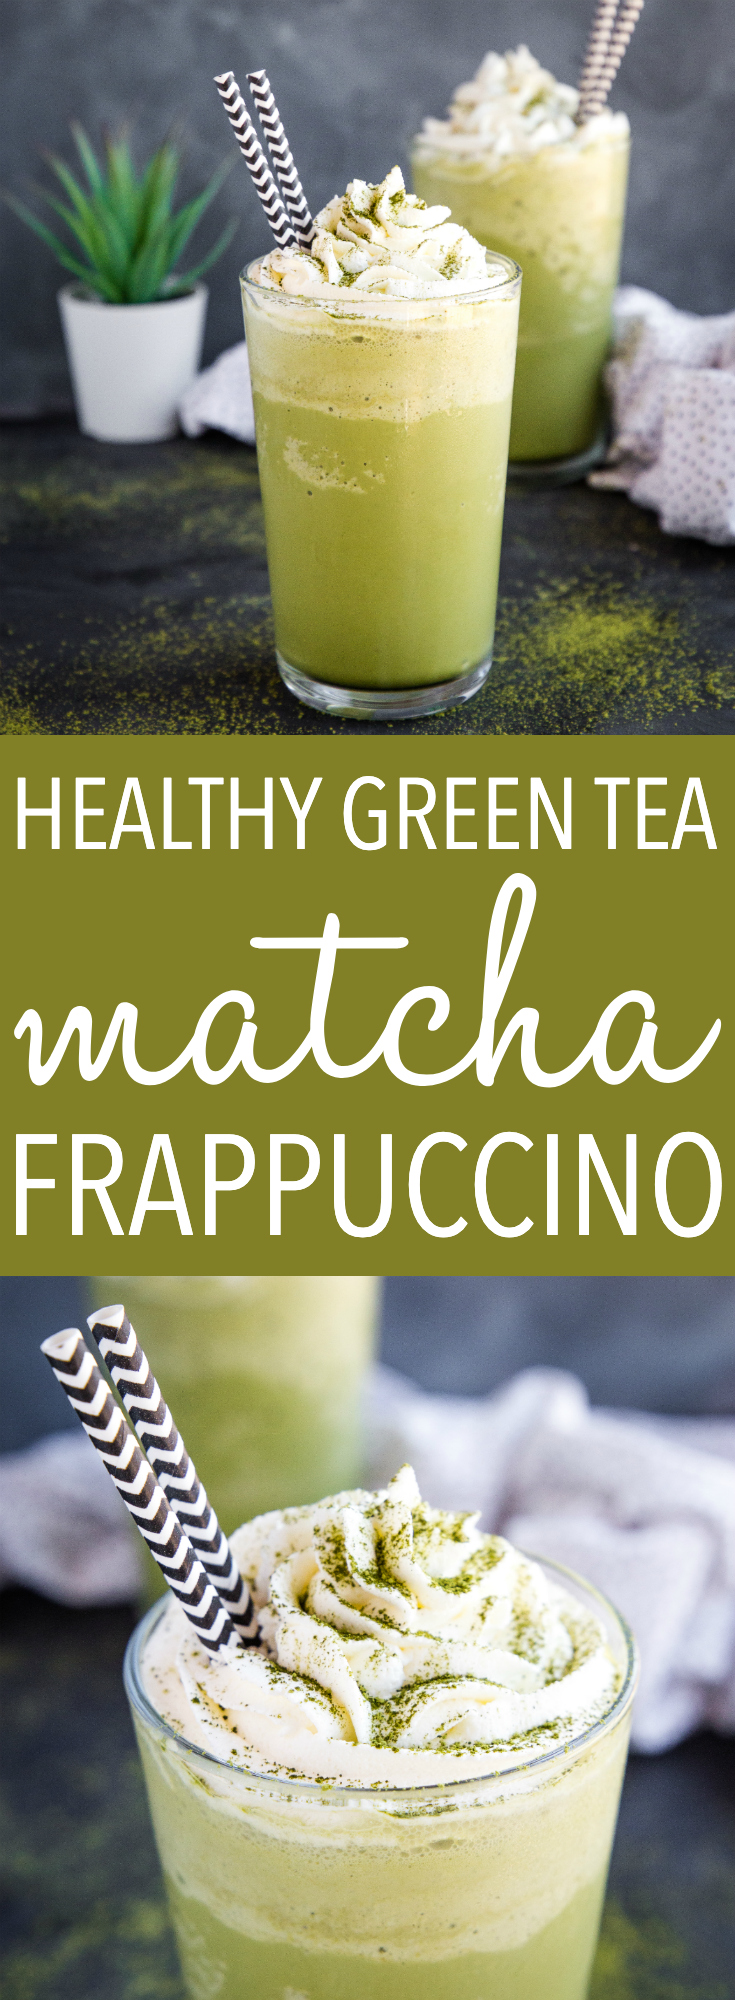 This Healthy Matcha Green Tea Frappuccino is the perfect summer blended drink for green tea lovers! It's refined sugar-free, low in fat, and under 150 calories! Recipe from thebusybaker.ca! #starbucks #coffee #matcha #greentea #copycat #frappuccino #coldbrew #drink #tea #summer #smoothie #blender #cool #recipe via @busybakerblog